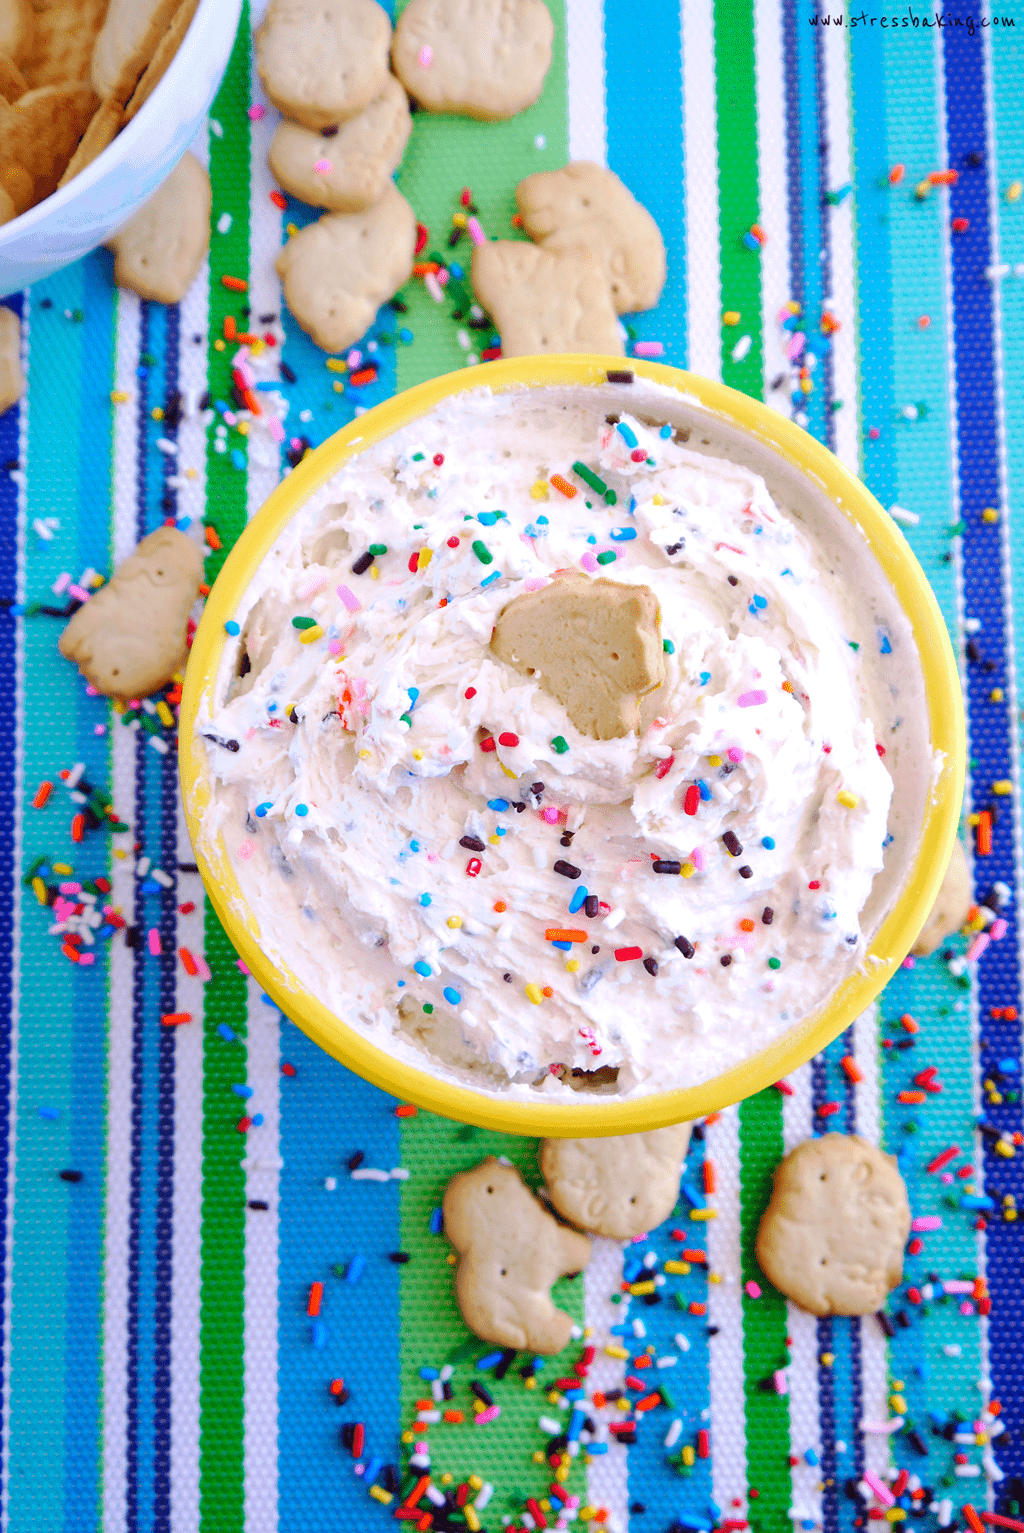 Yellow bowl full of funfetti dunkaroo dip topped with sprinkles on a colorful striped placemat with animal crackers